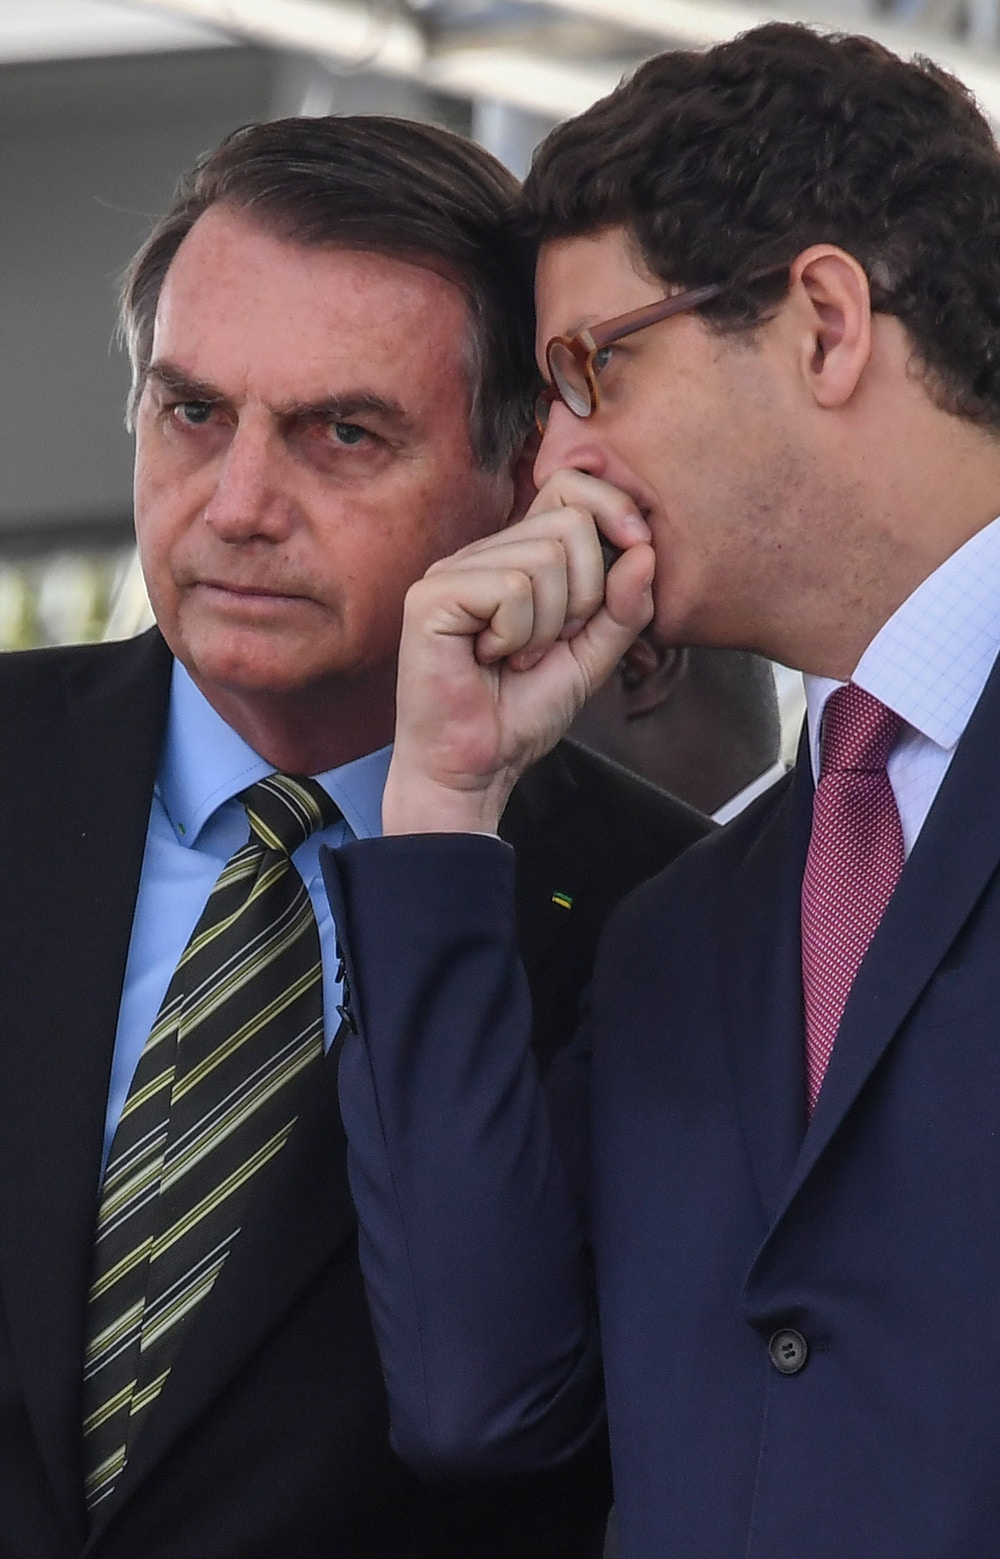 Brazilian President Jair Bolsonaro (L) listens to his Minister of the Environment Ricardo Salles, during a military event in Sao Paulo, Brazil on October 11, 2019.